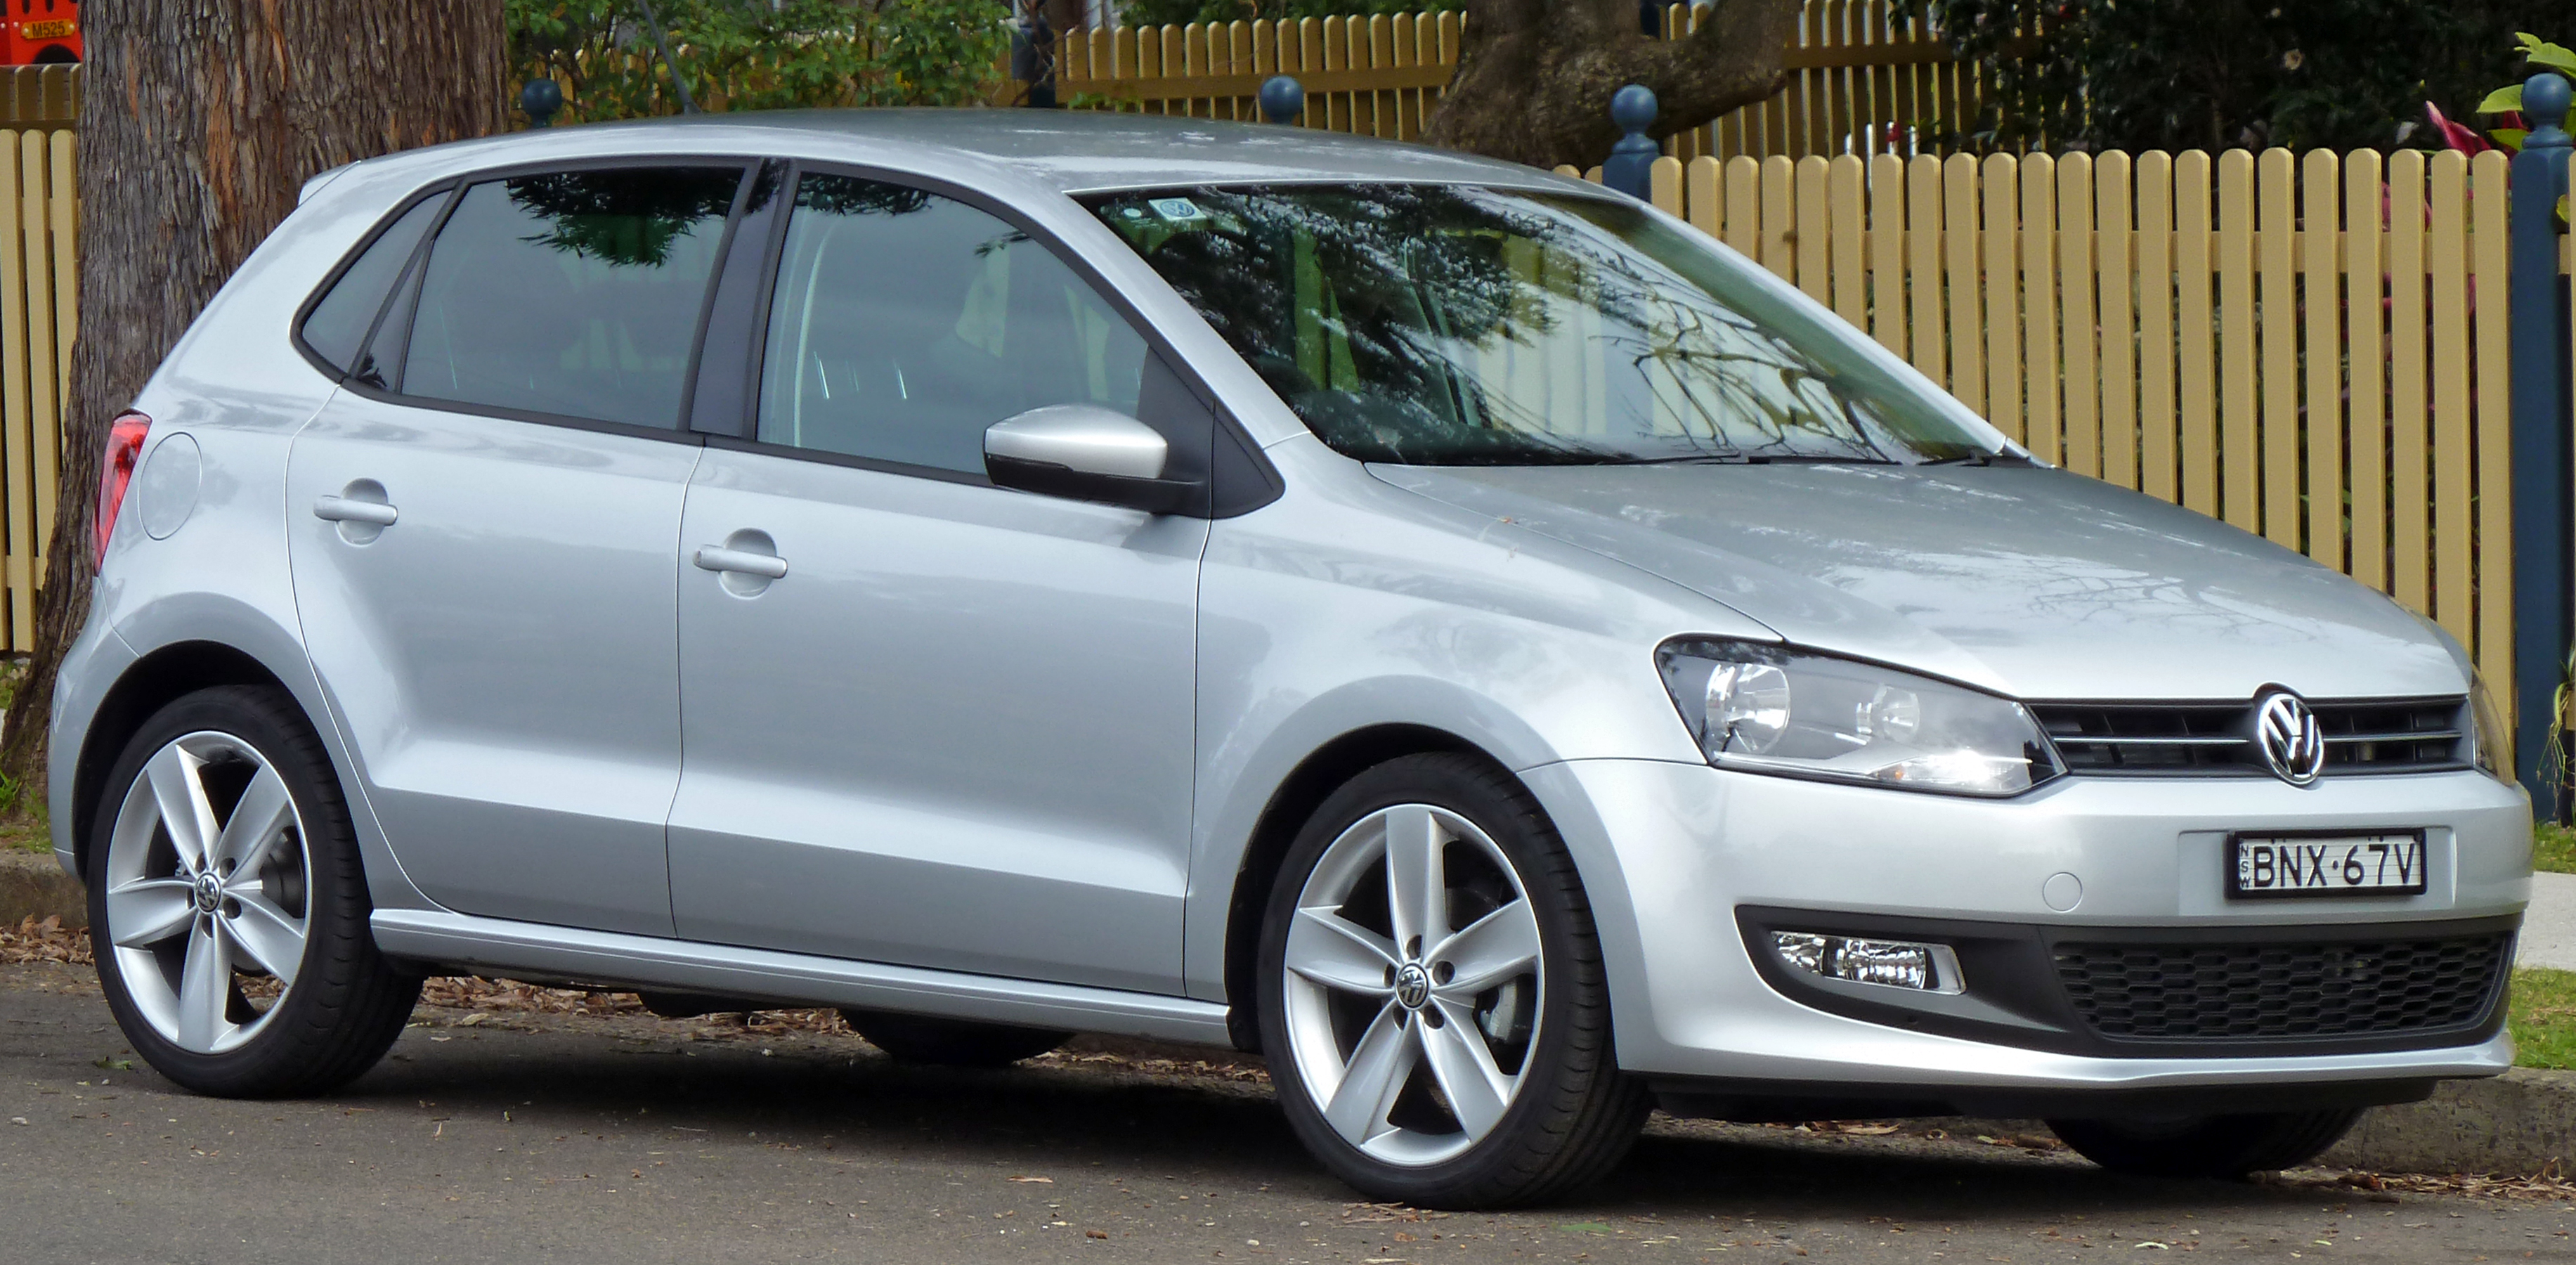 http://upload.wikimedia.org/wikipedia/commons/0/00/2010_Volkswagen_Polo_(6R)_77TSI_Comfortline_5-door_hatchback_01.jpg